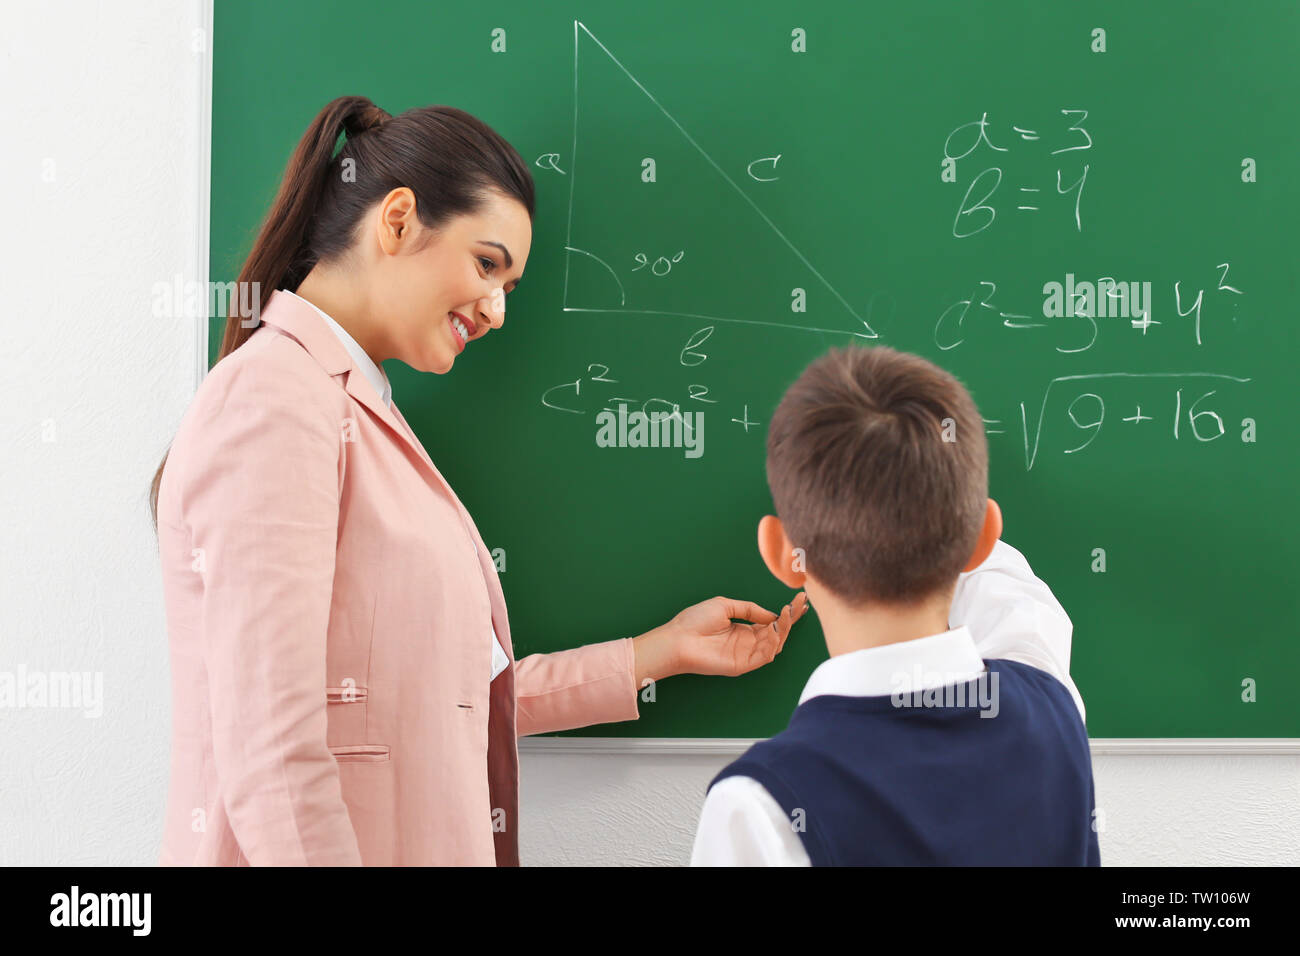 Teacher and schoolboy writing on blackboard in classroom - Stock Image